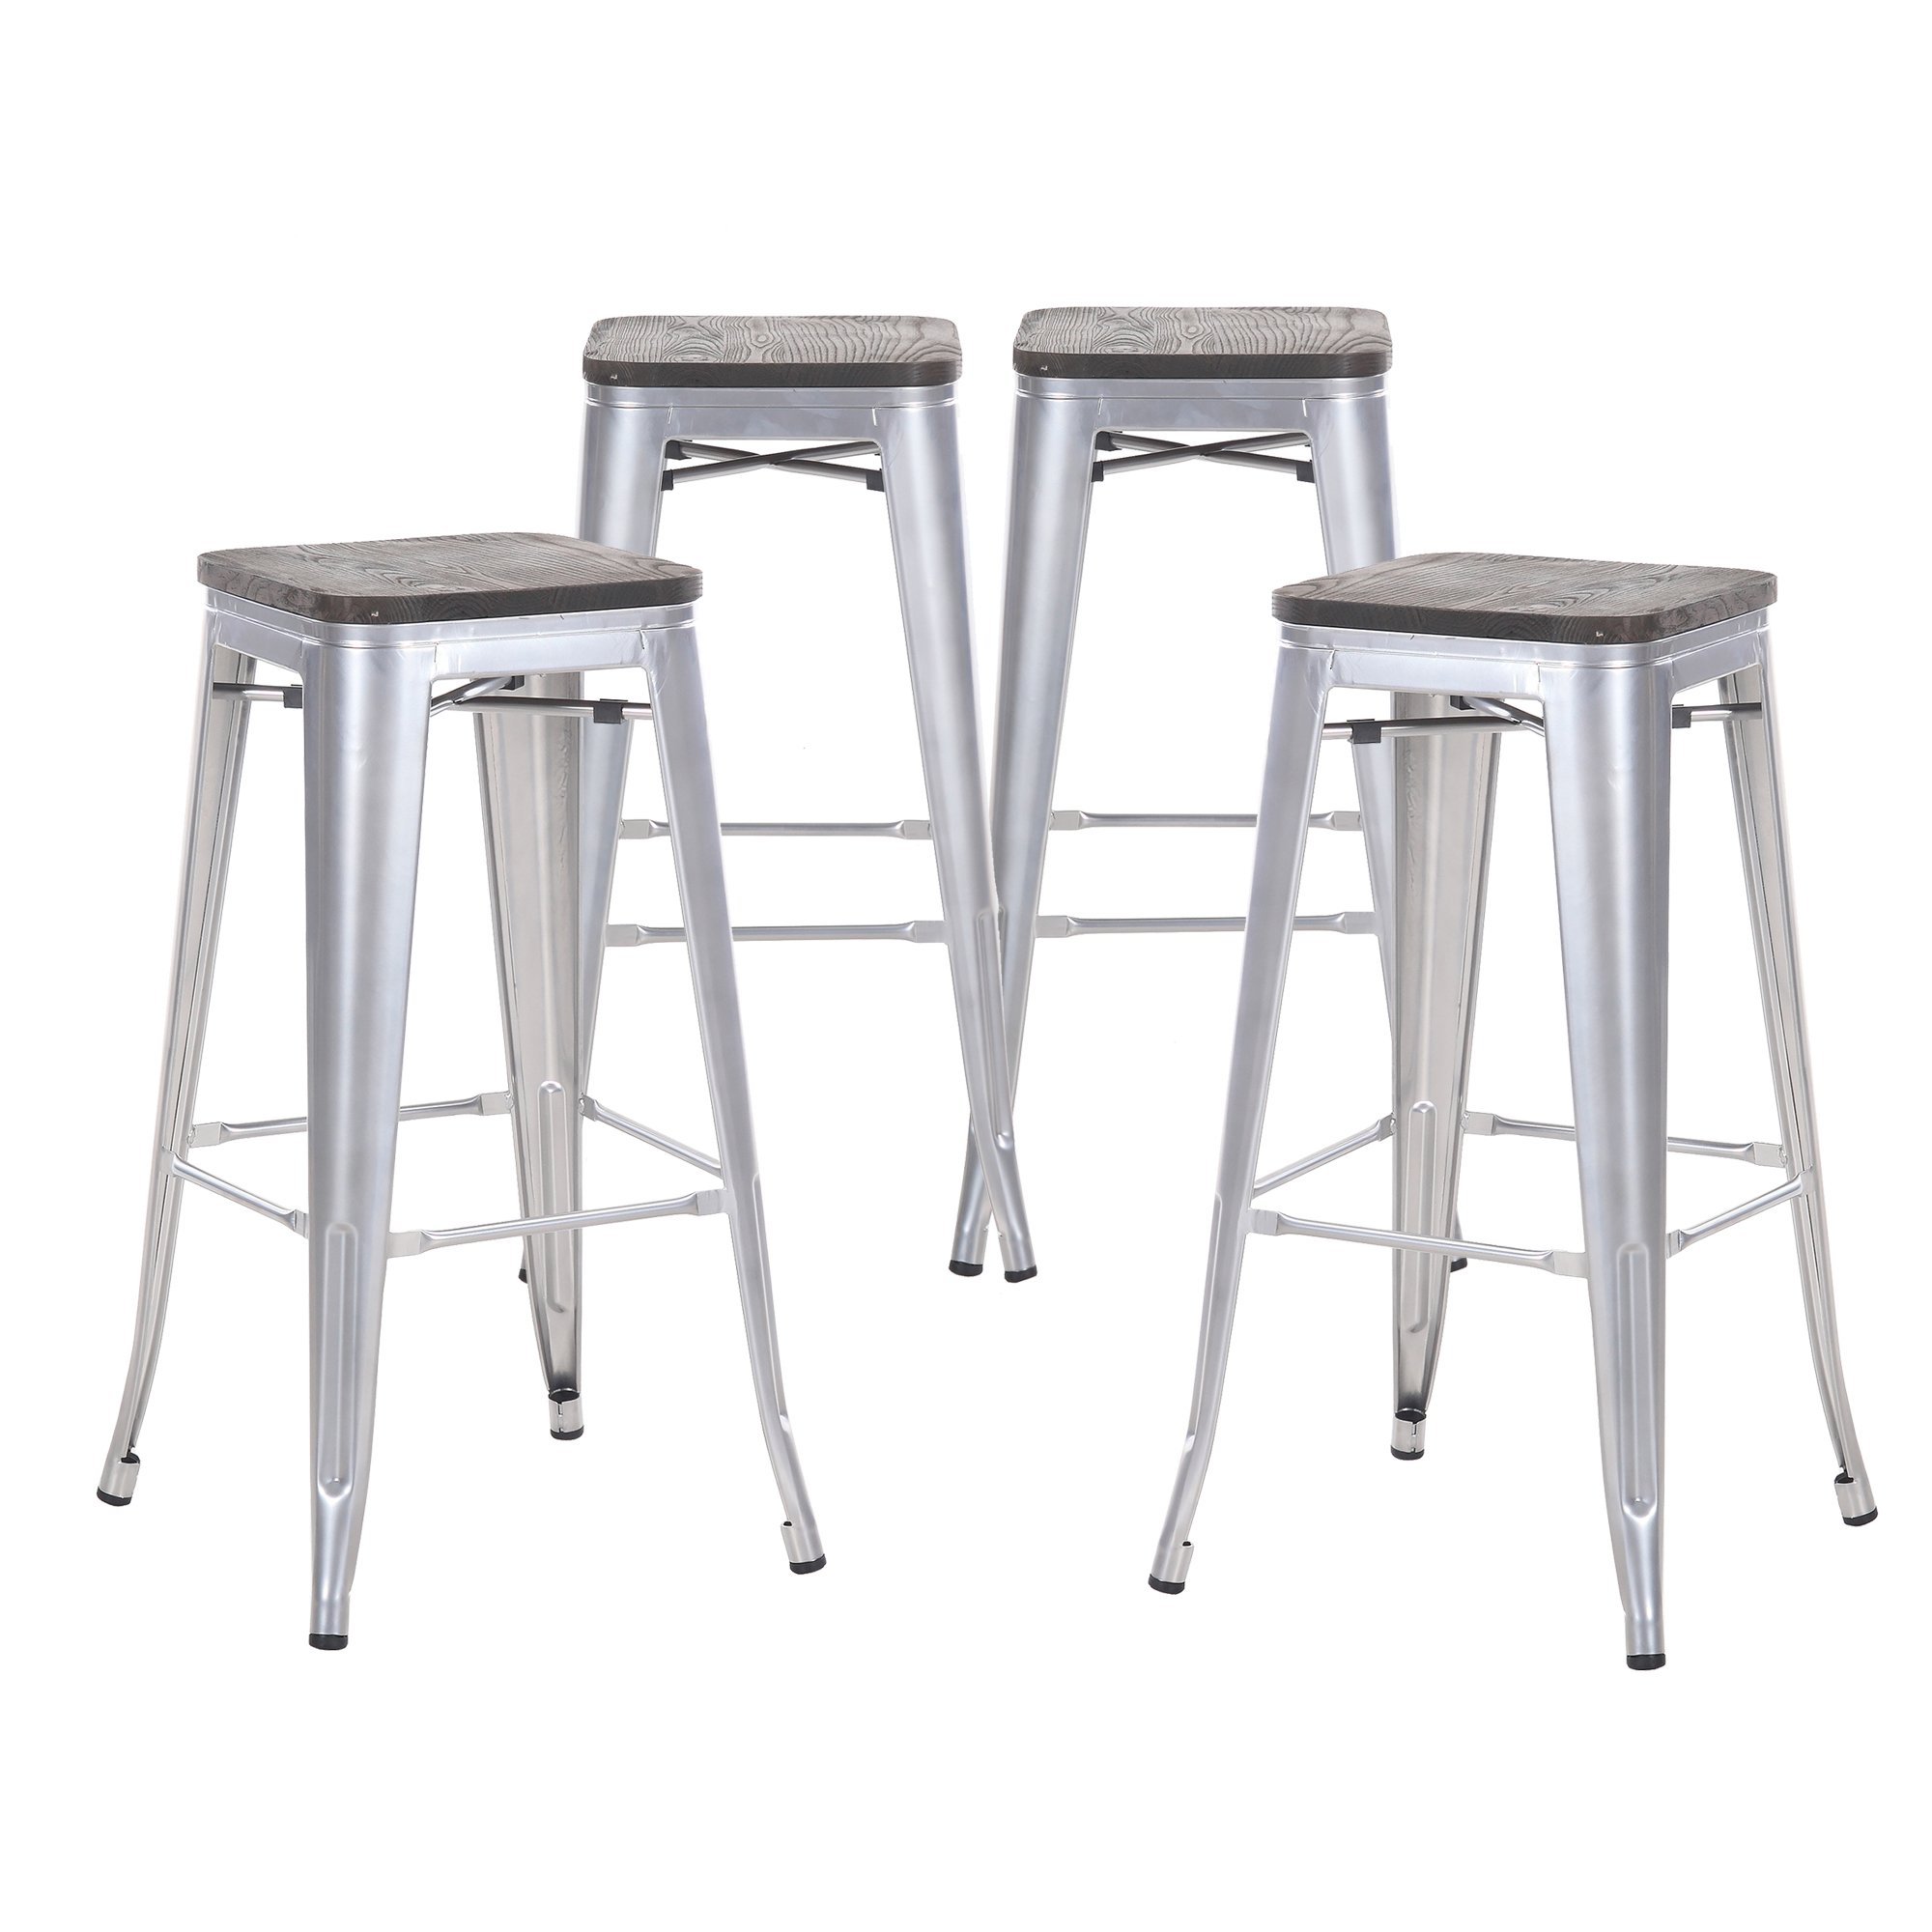 Buschman Set of Four Gray Wooden Seat 30 Inches Counter Height Tolix-Style Metal Bar Stools, Indoor/Outdoor, Stackable